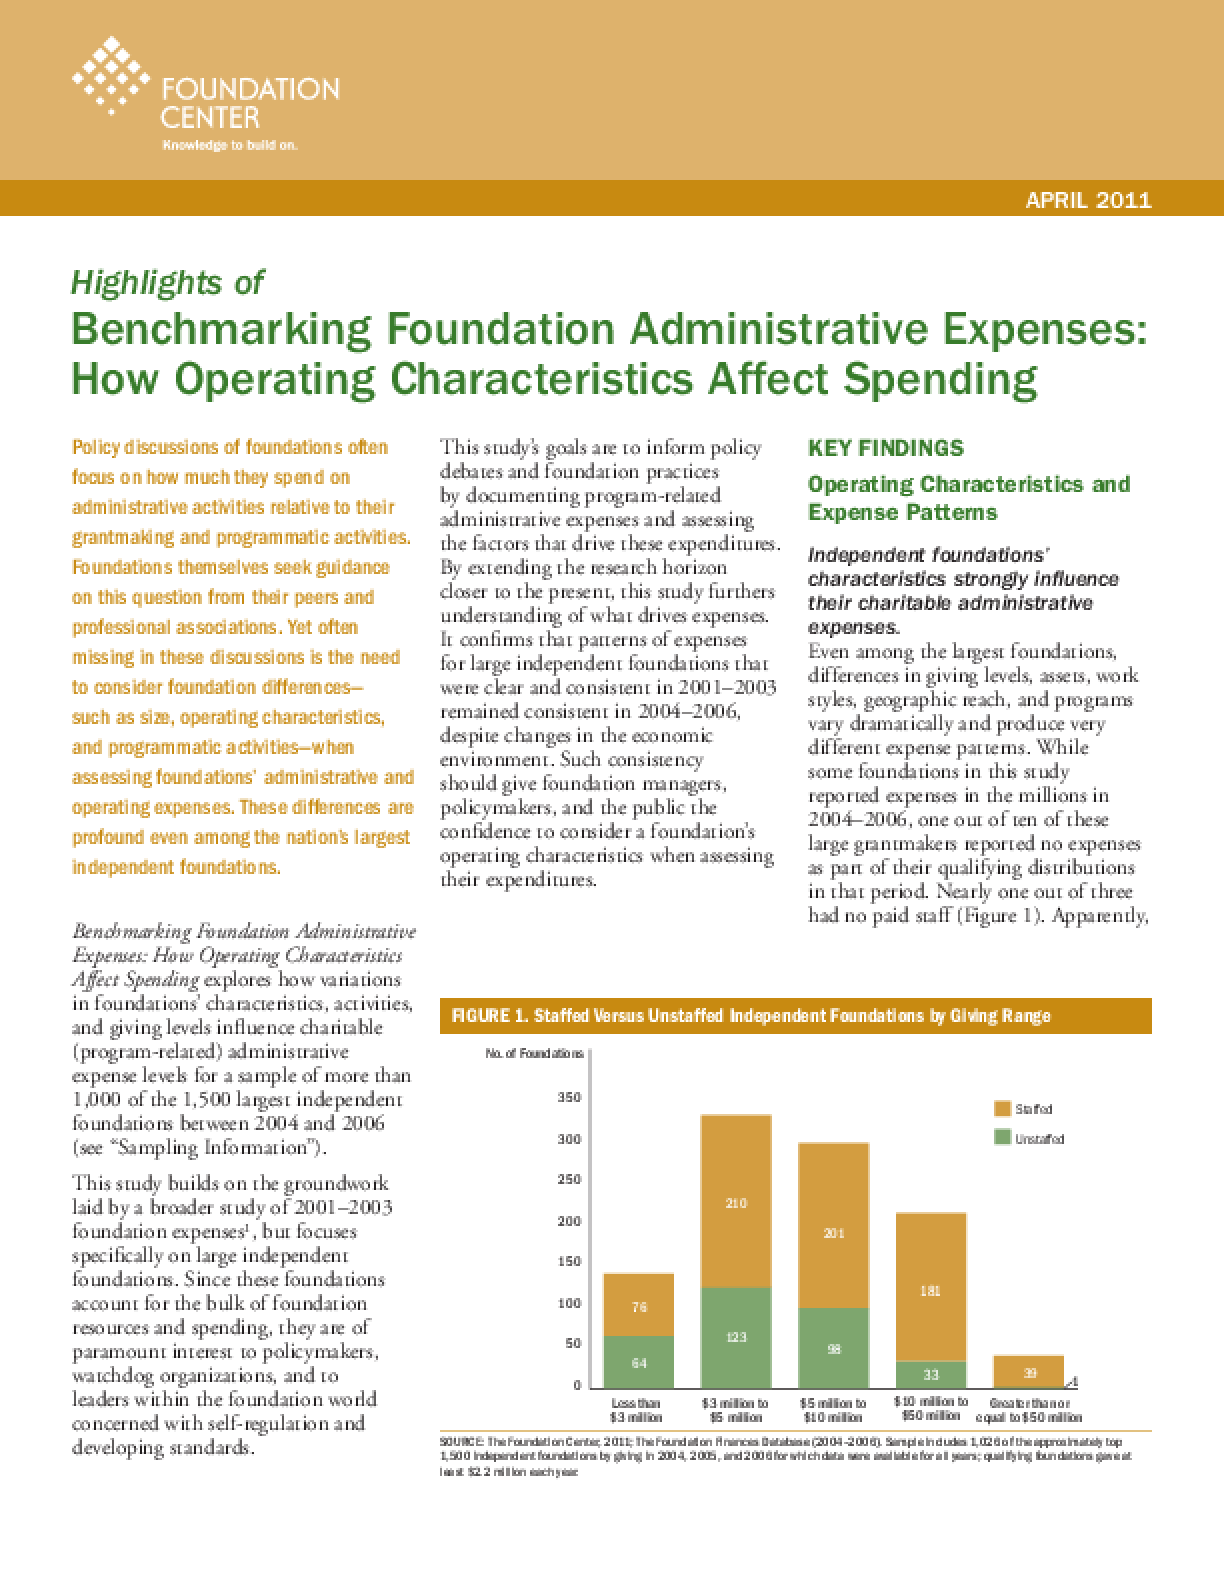 Highlights of Benchmarking Foundation Administrative Expenses: How Operating Characteristics Affect Spending